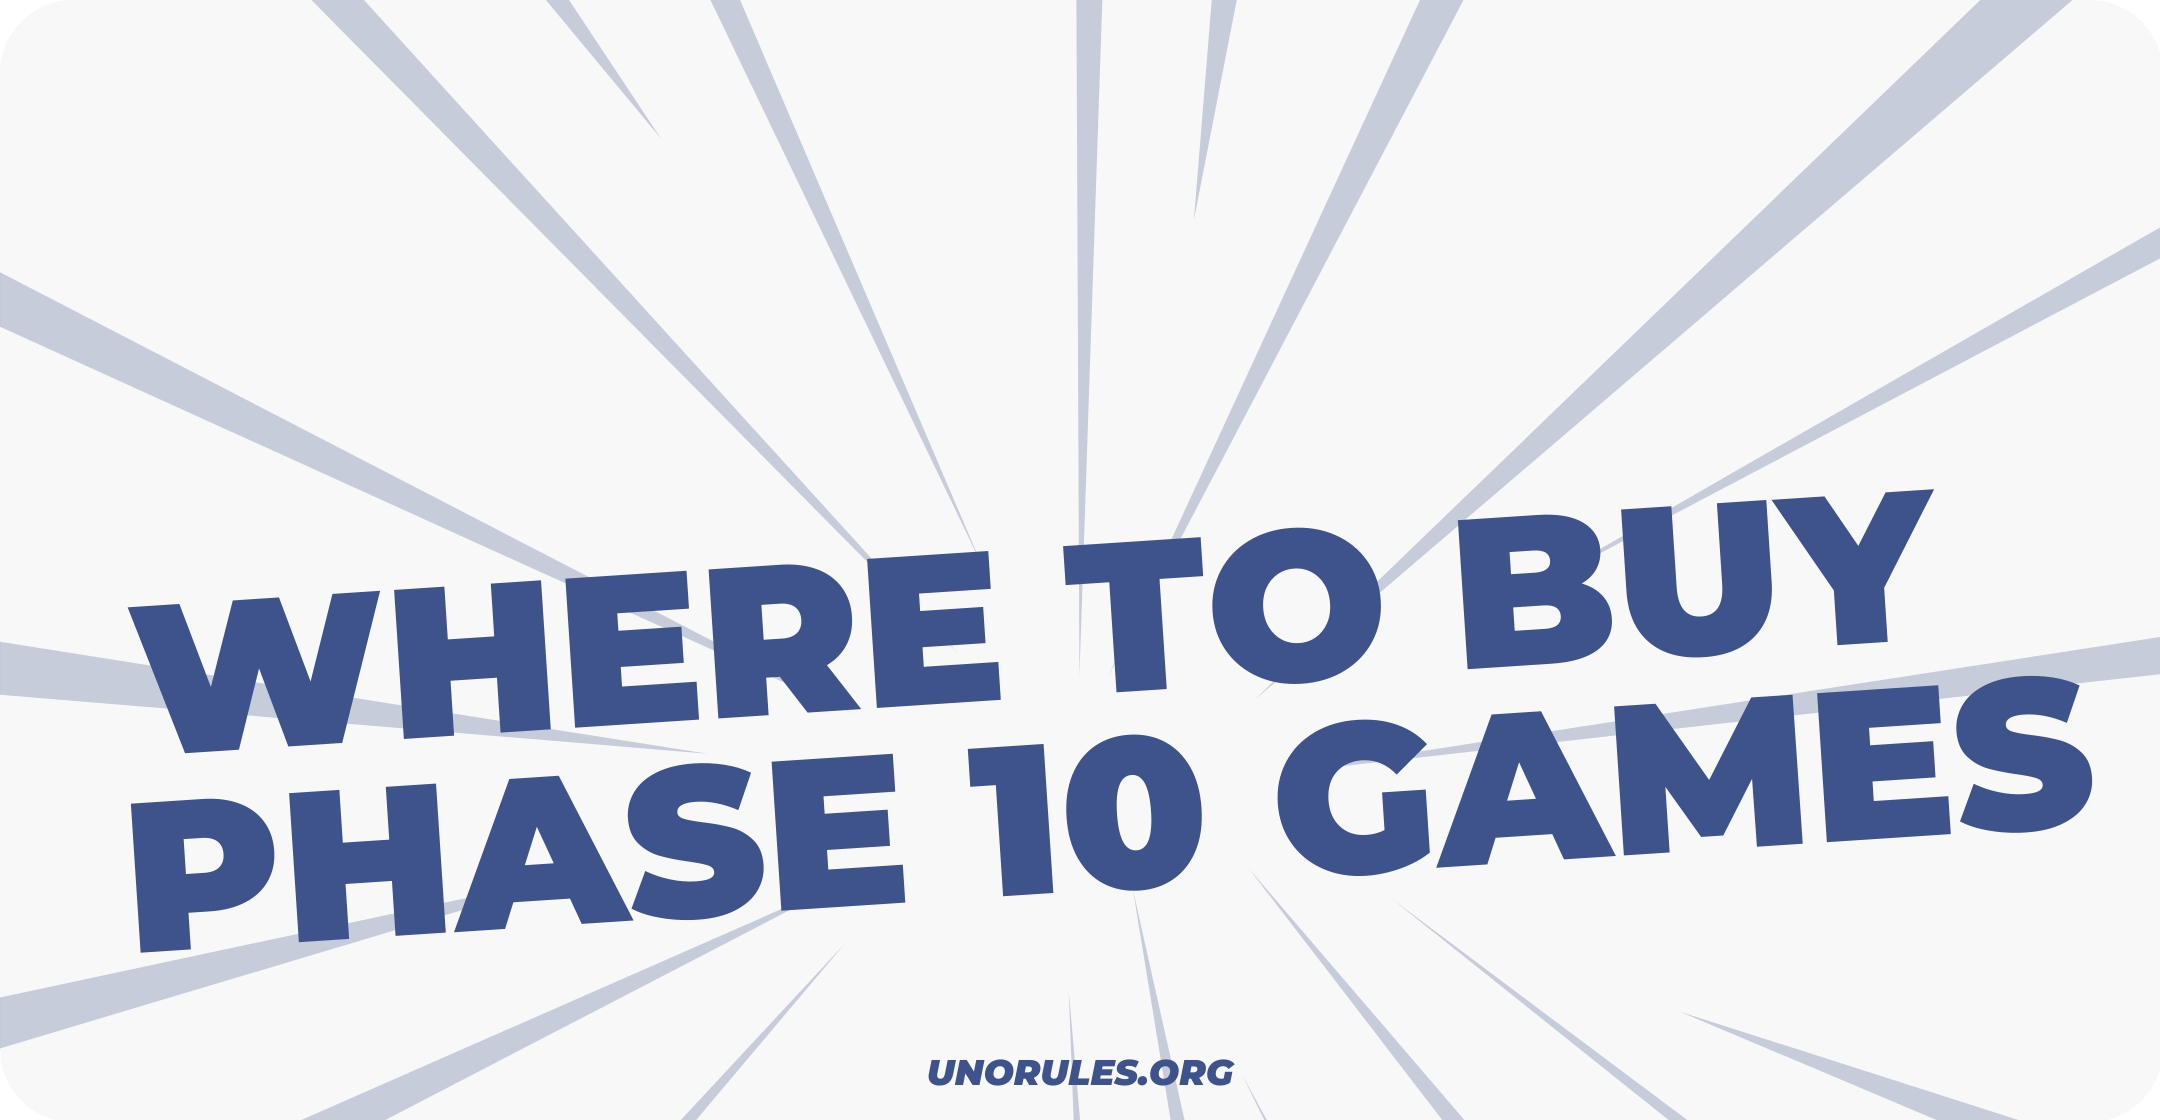 Where can you buy Phase 10 games?